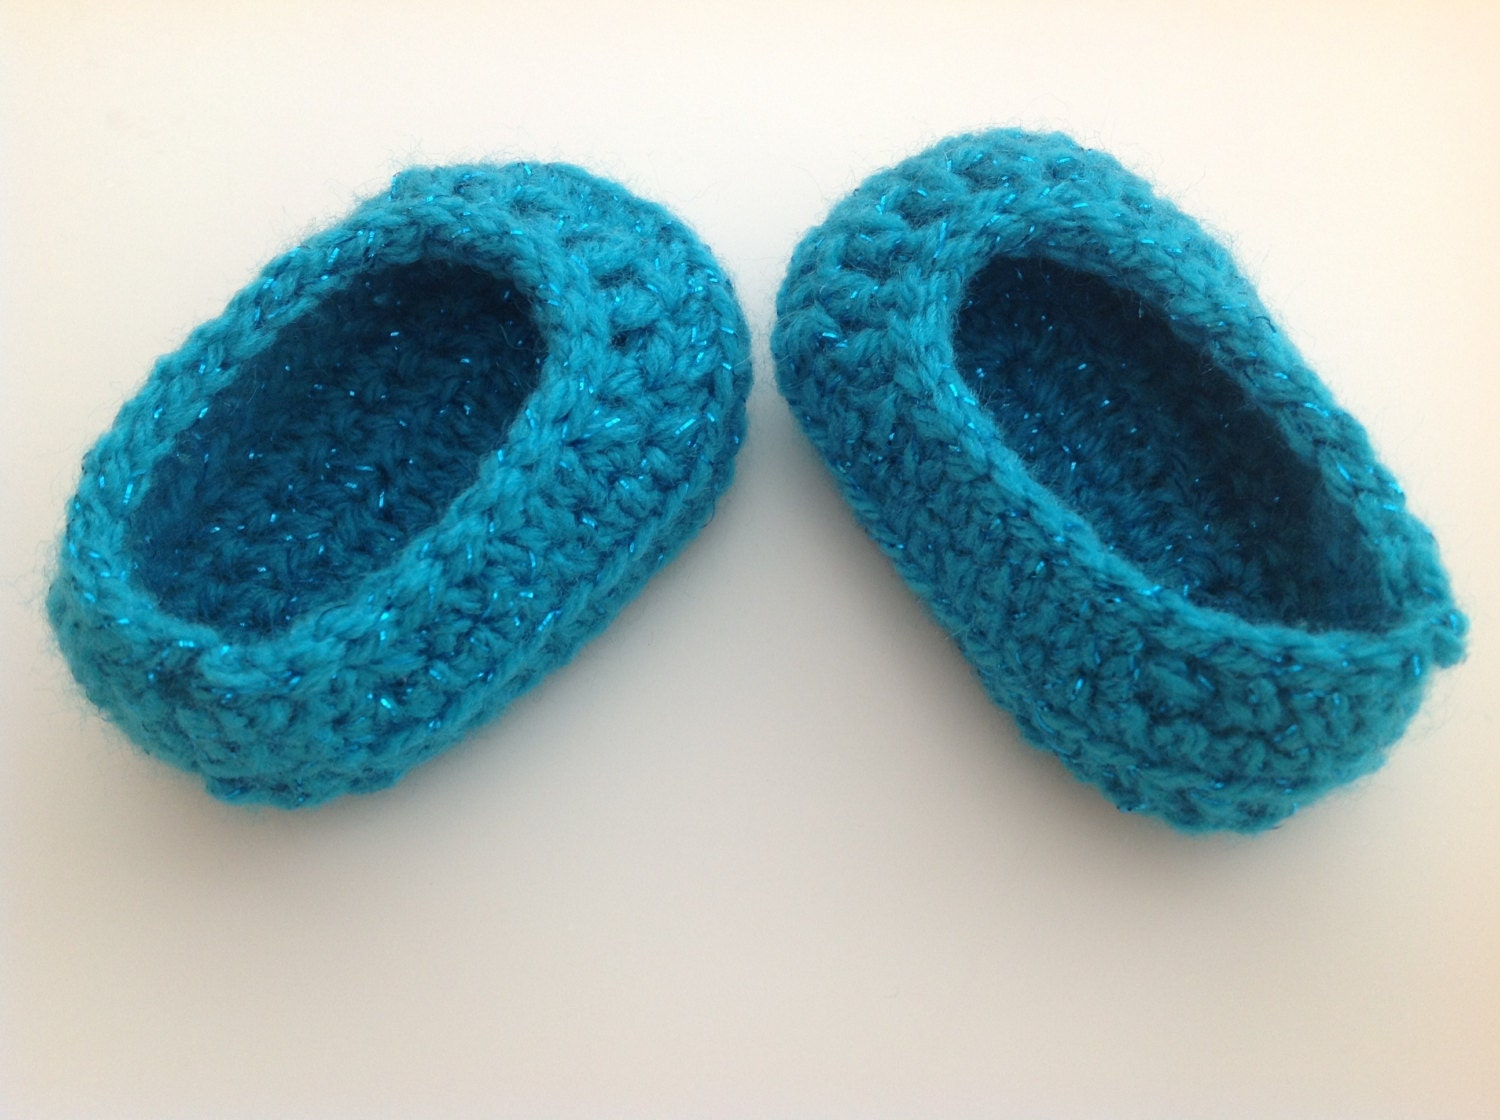 Crochet Baby Shoes by Creationsbykandpj on Etsy